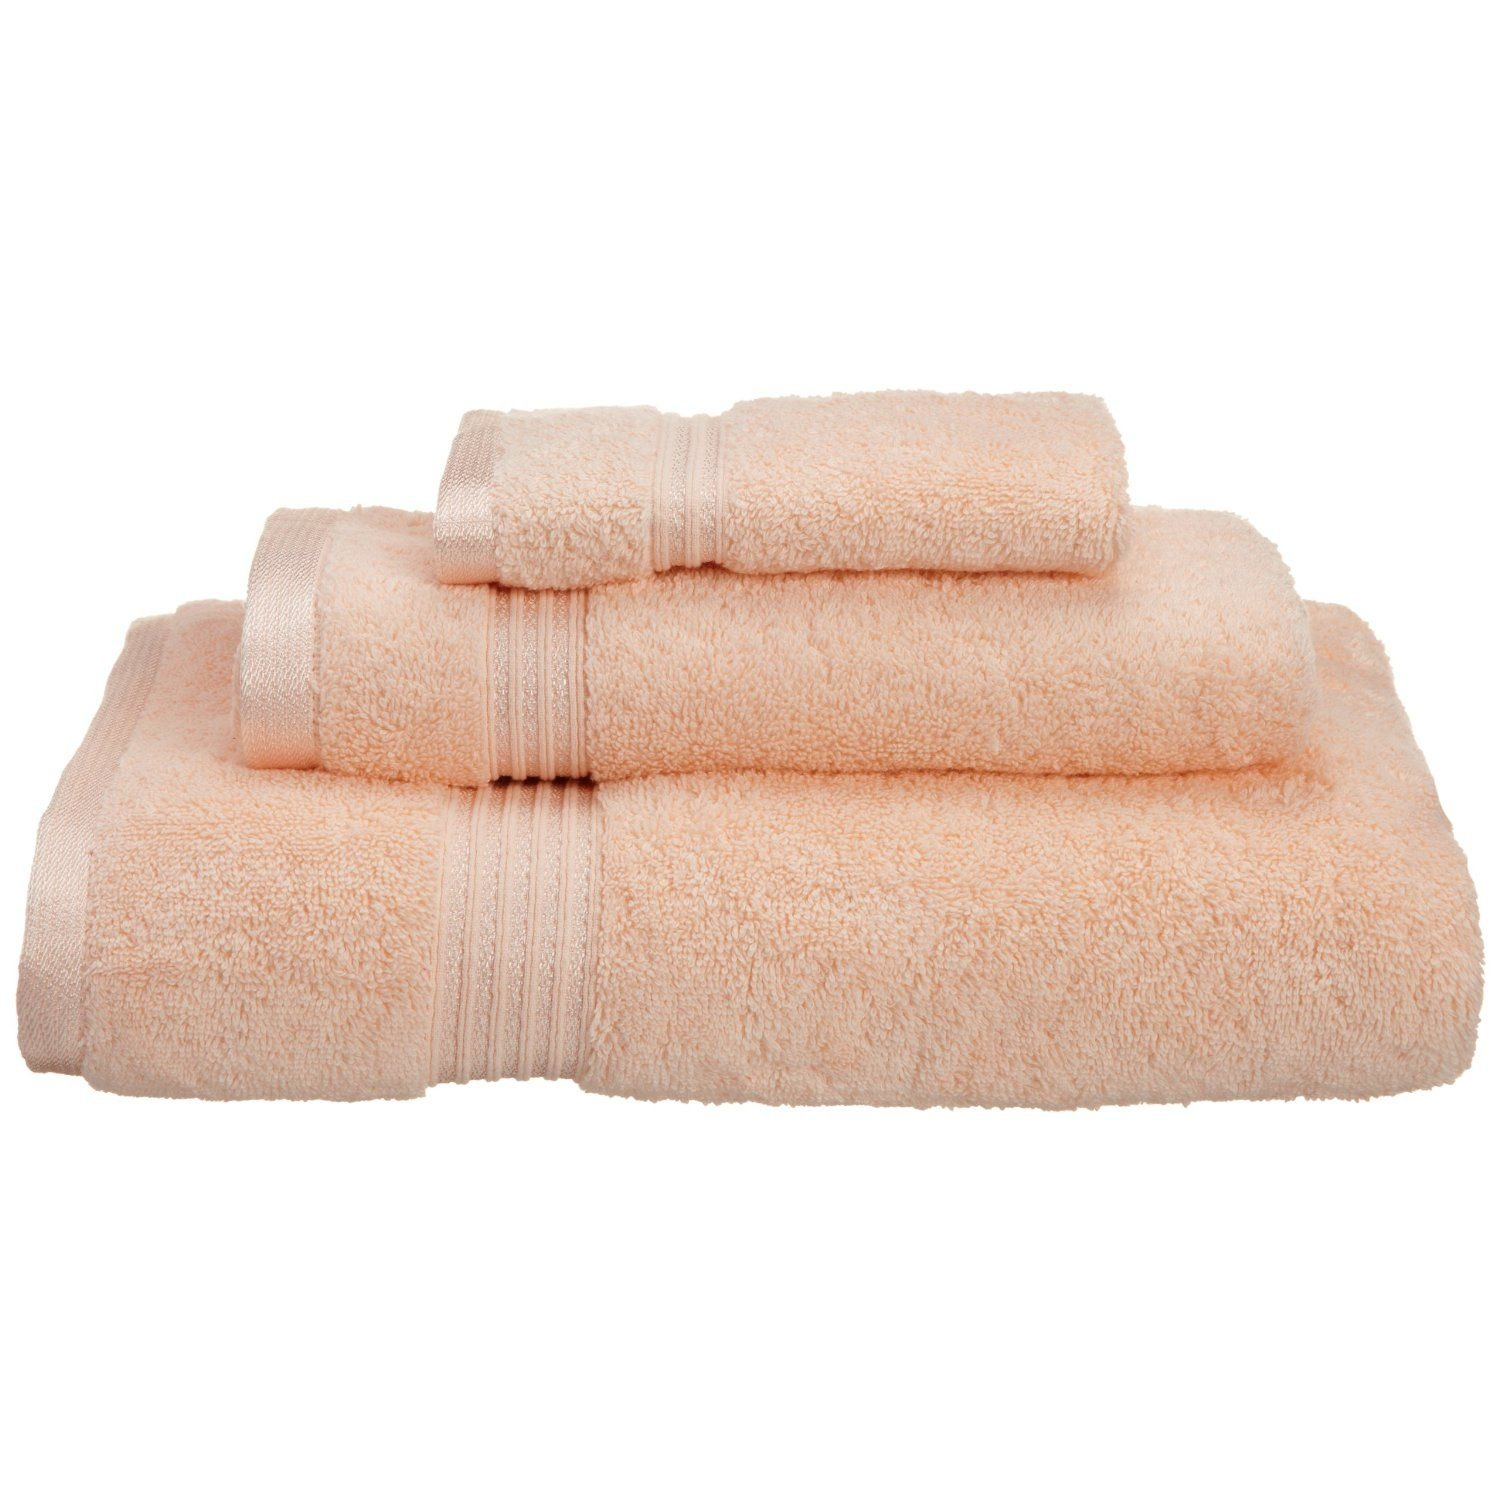 Superior Luxurious Soft Hotel & Spa Quality 3-Piece Towel Set, Made of 100% Premium Long-Staple Combed Cotton - Washcloth, Hand Towel, and Bath Towel, Peach